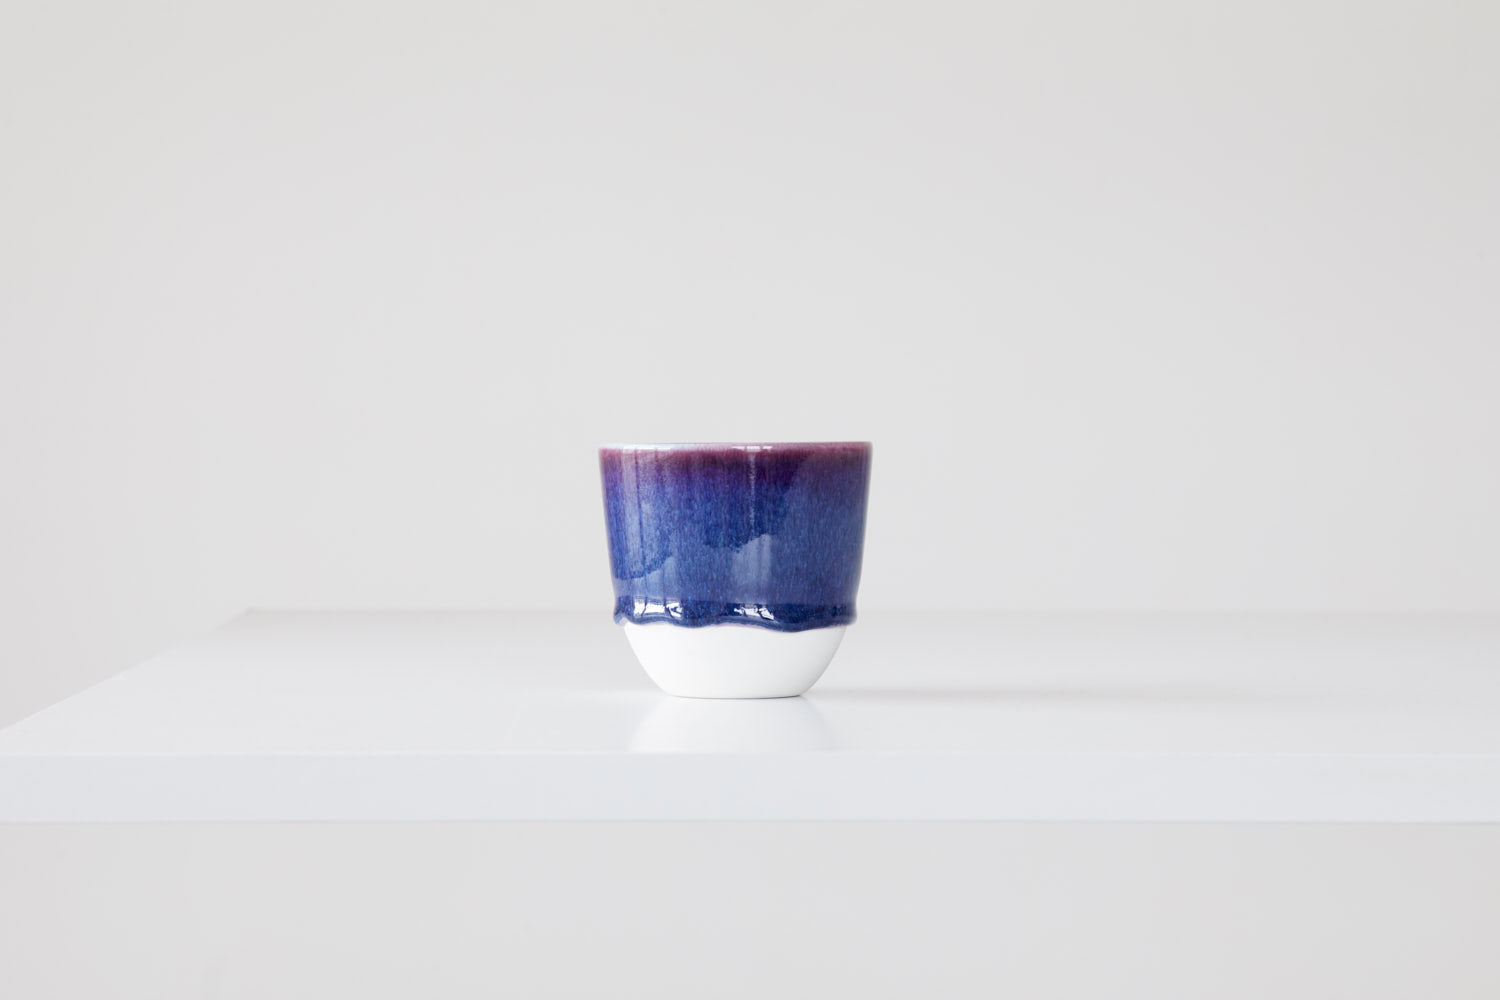 Simple cup, purple rain